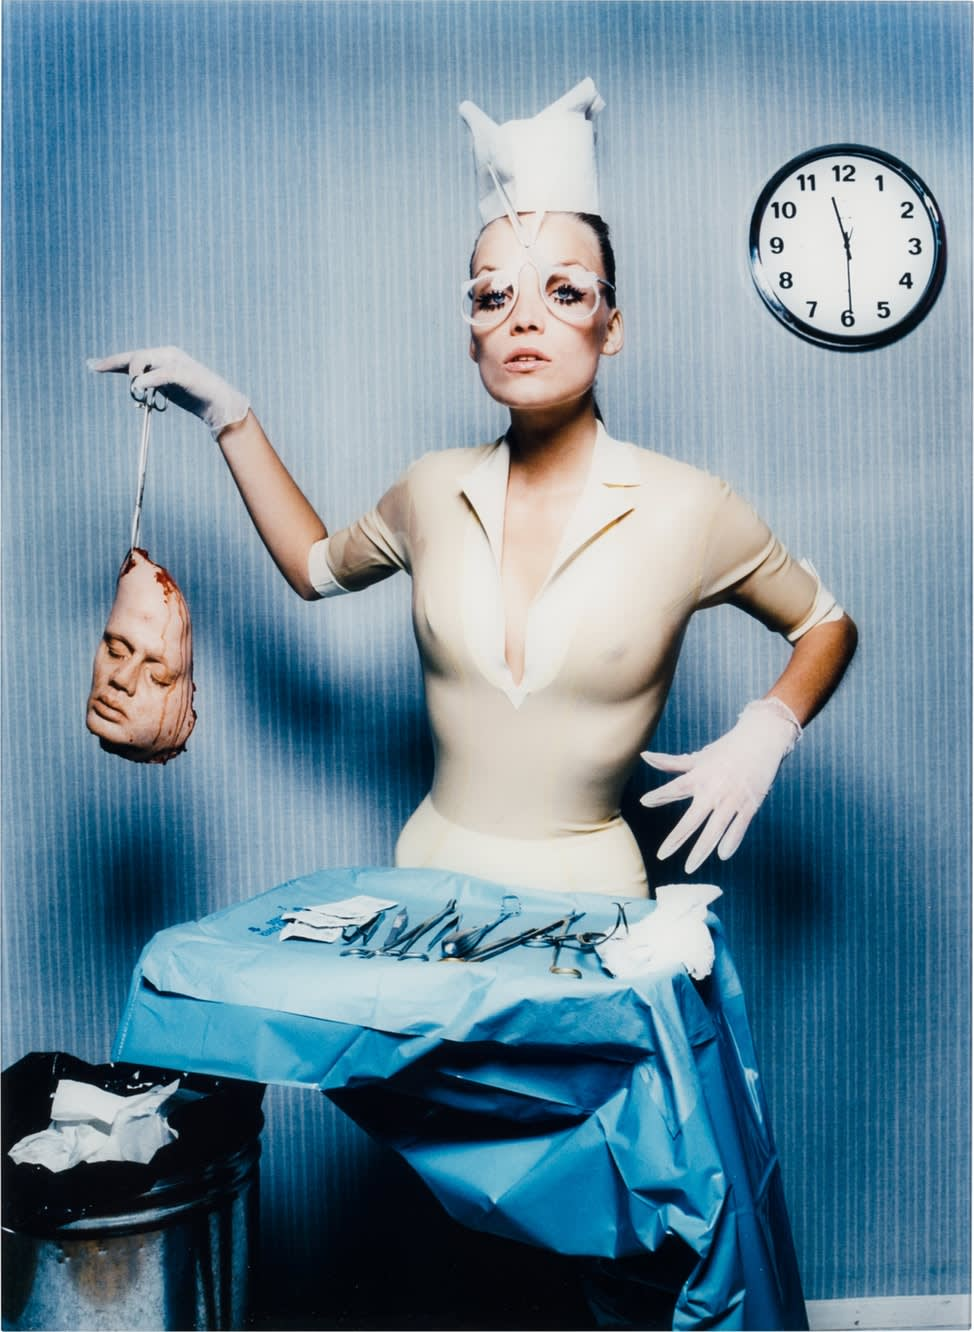 David LaChapelle, Free Consultation (Surgery Story), 1997